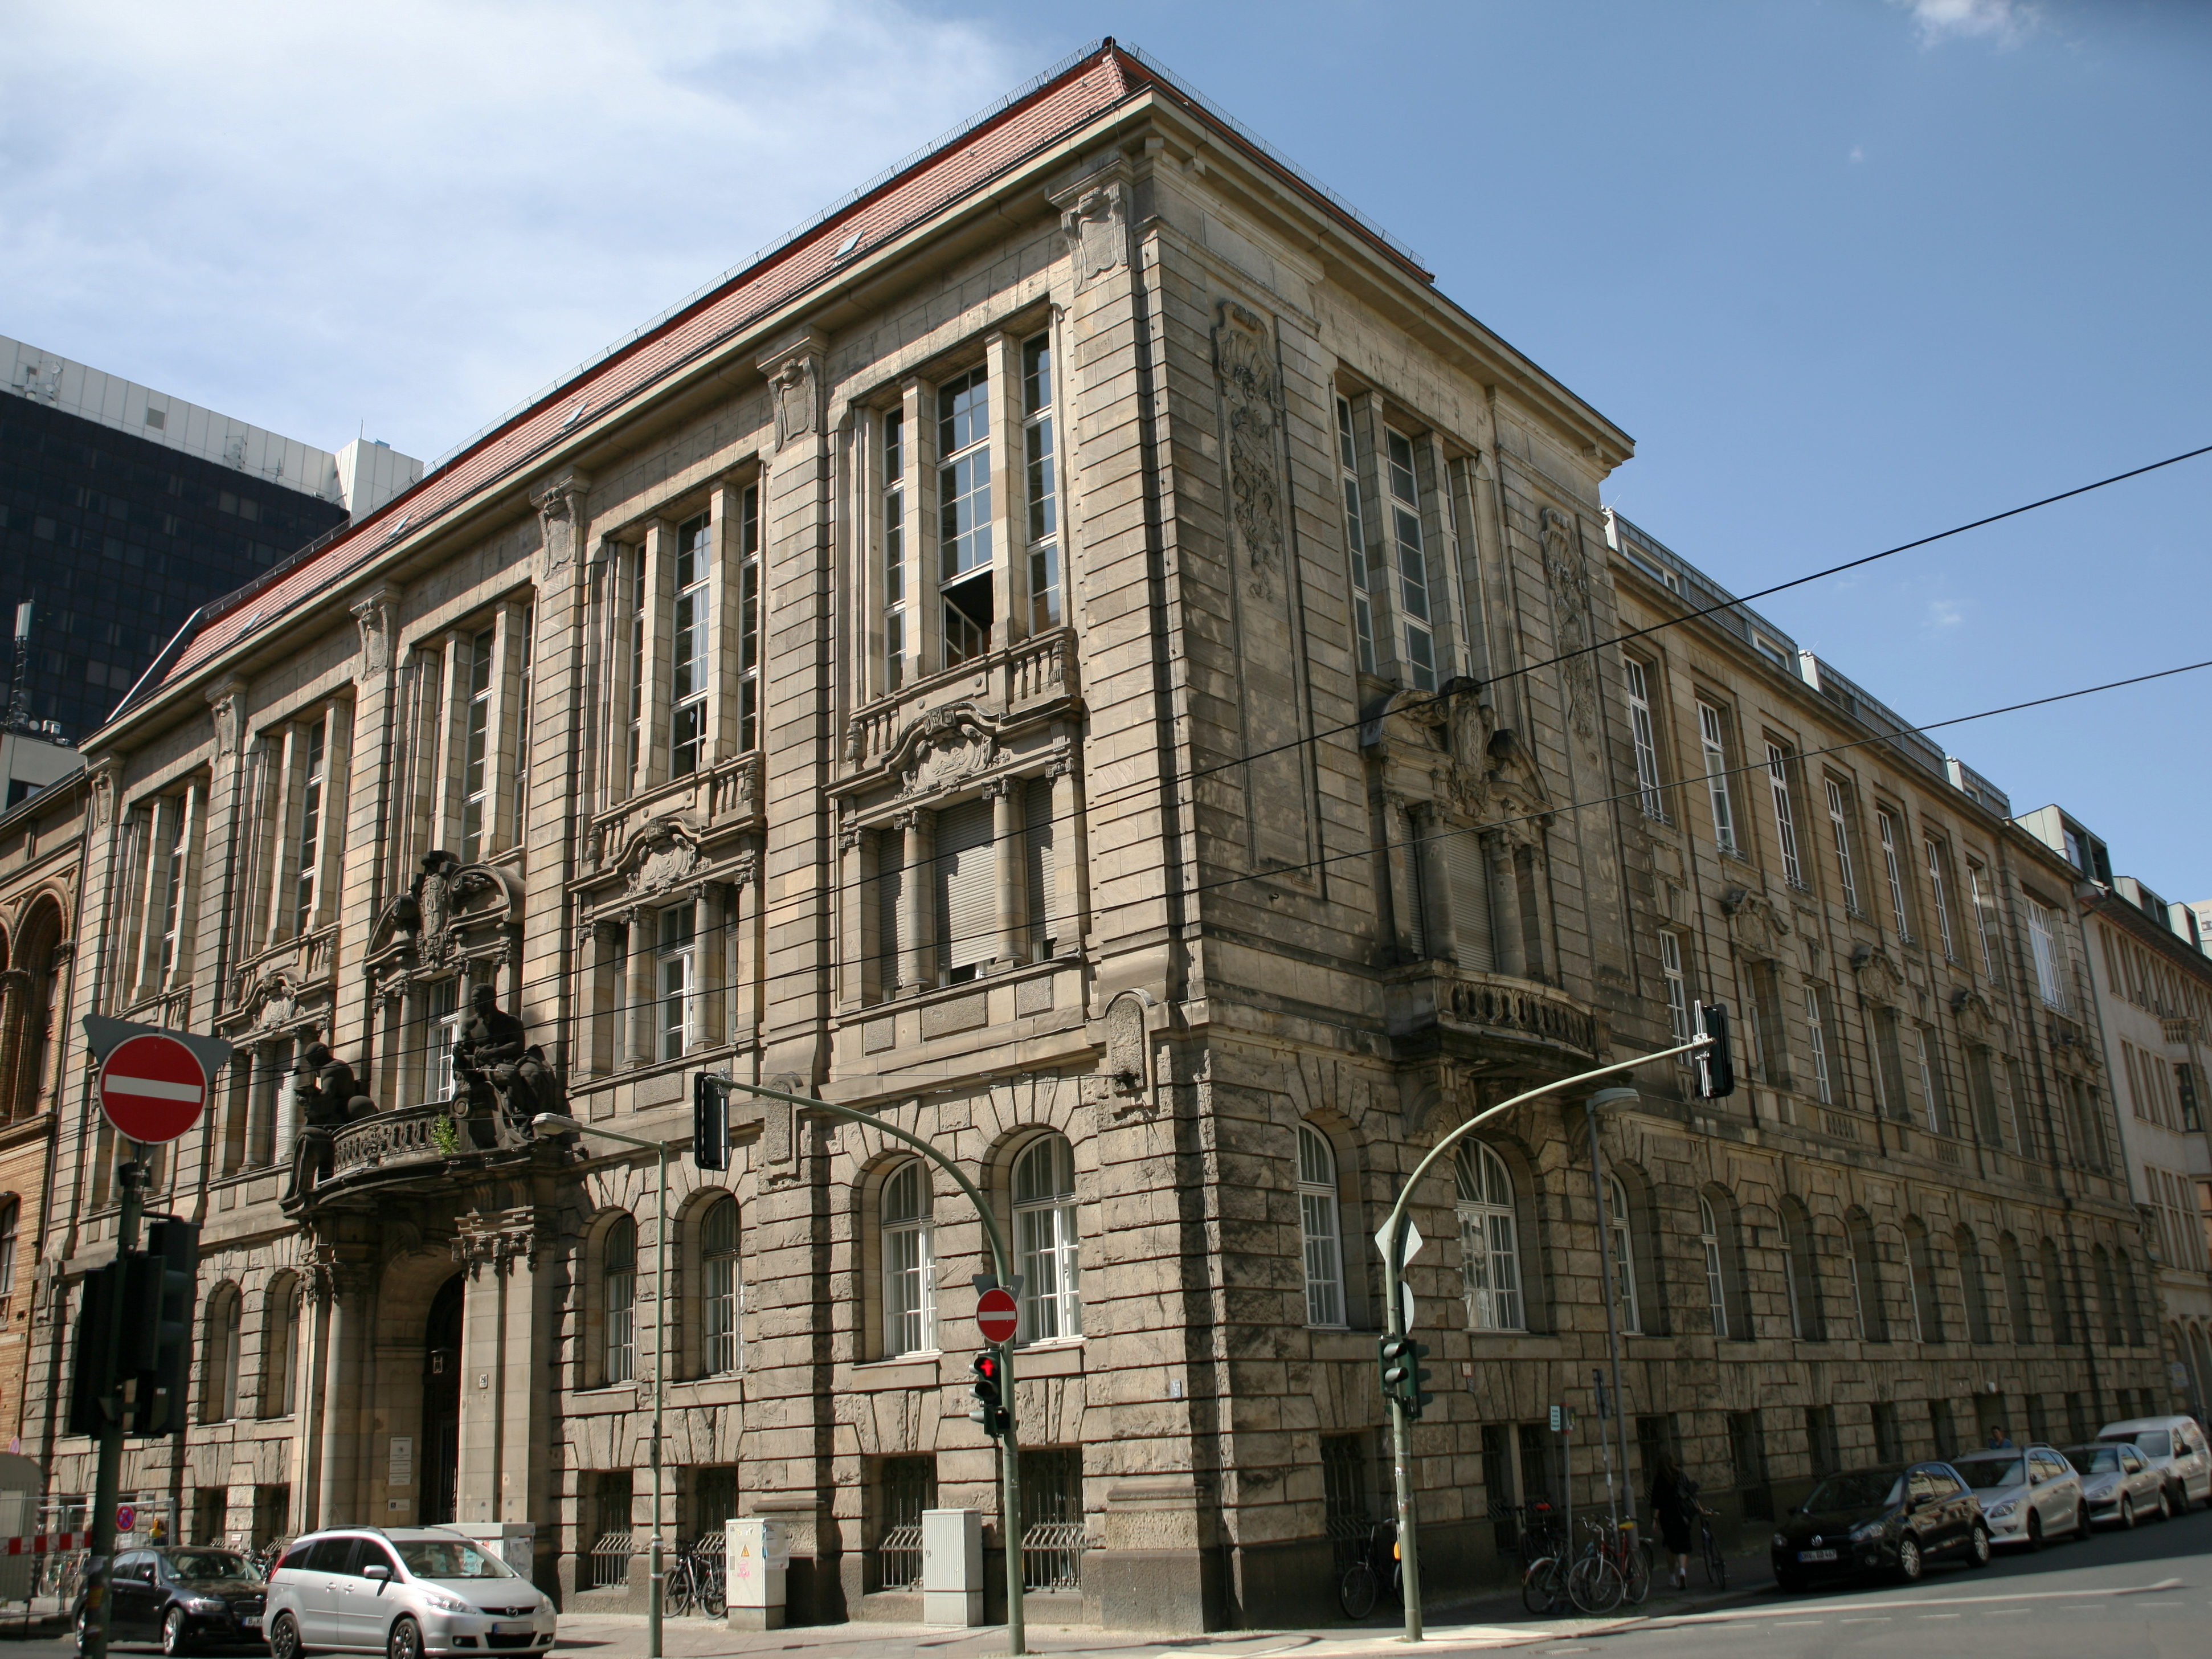 Berlin School of Library and Information Science - Wikipedia